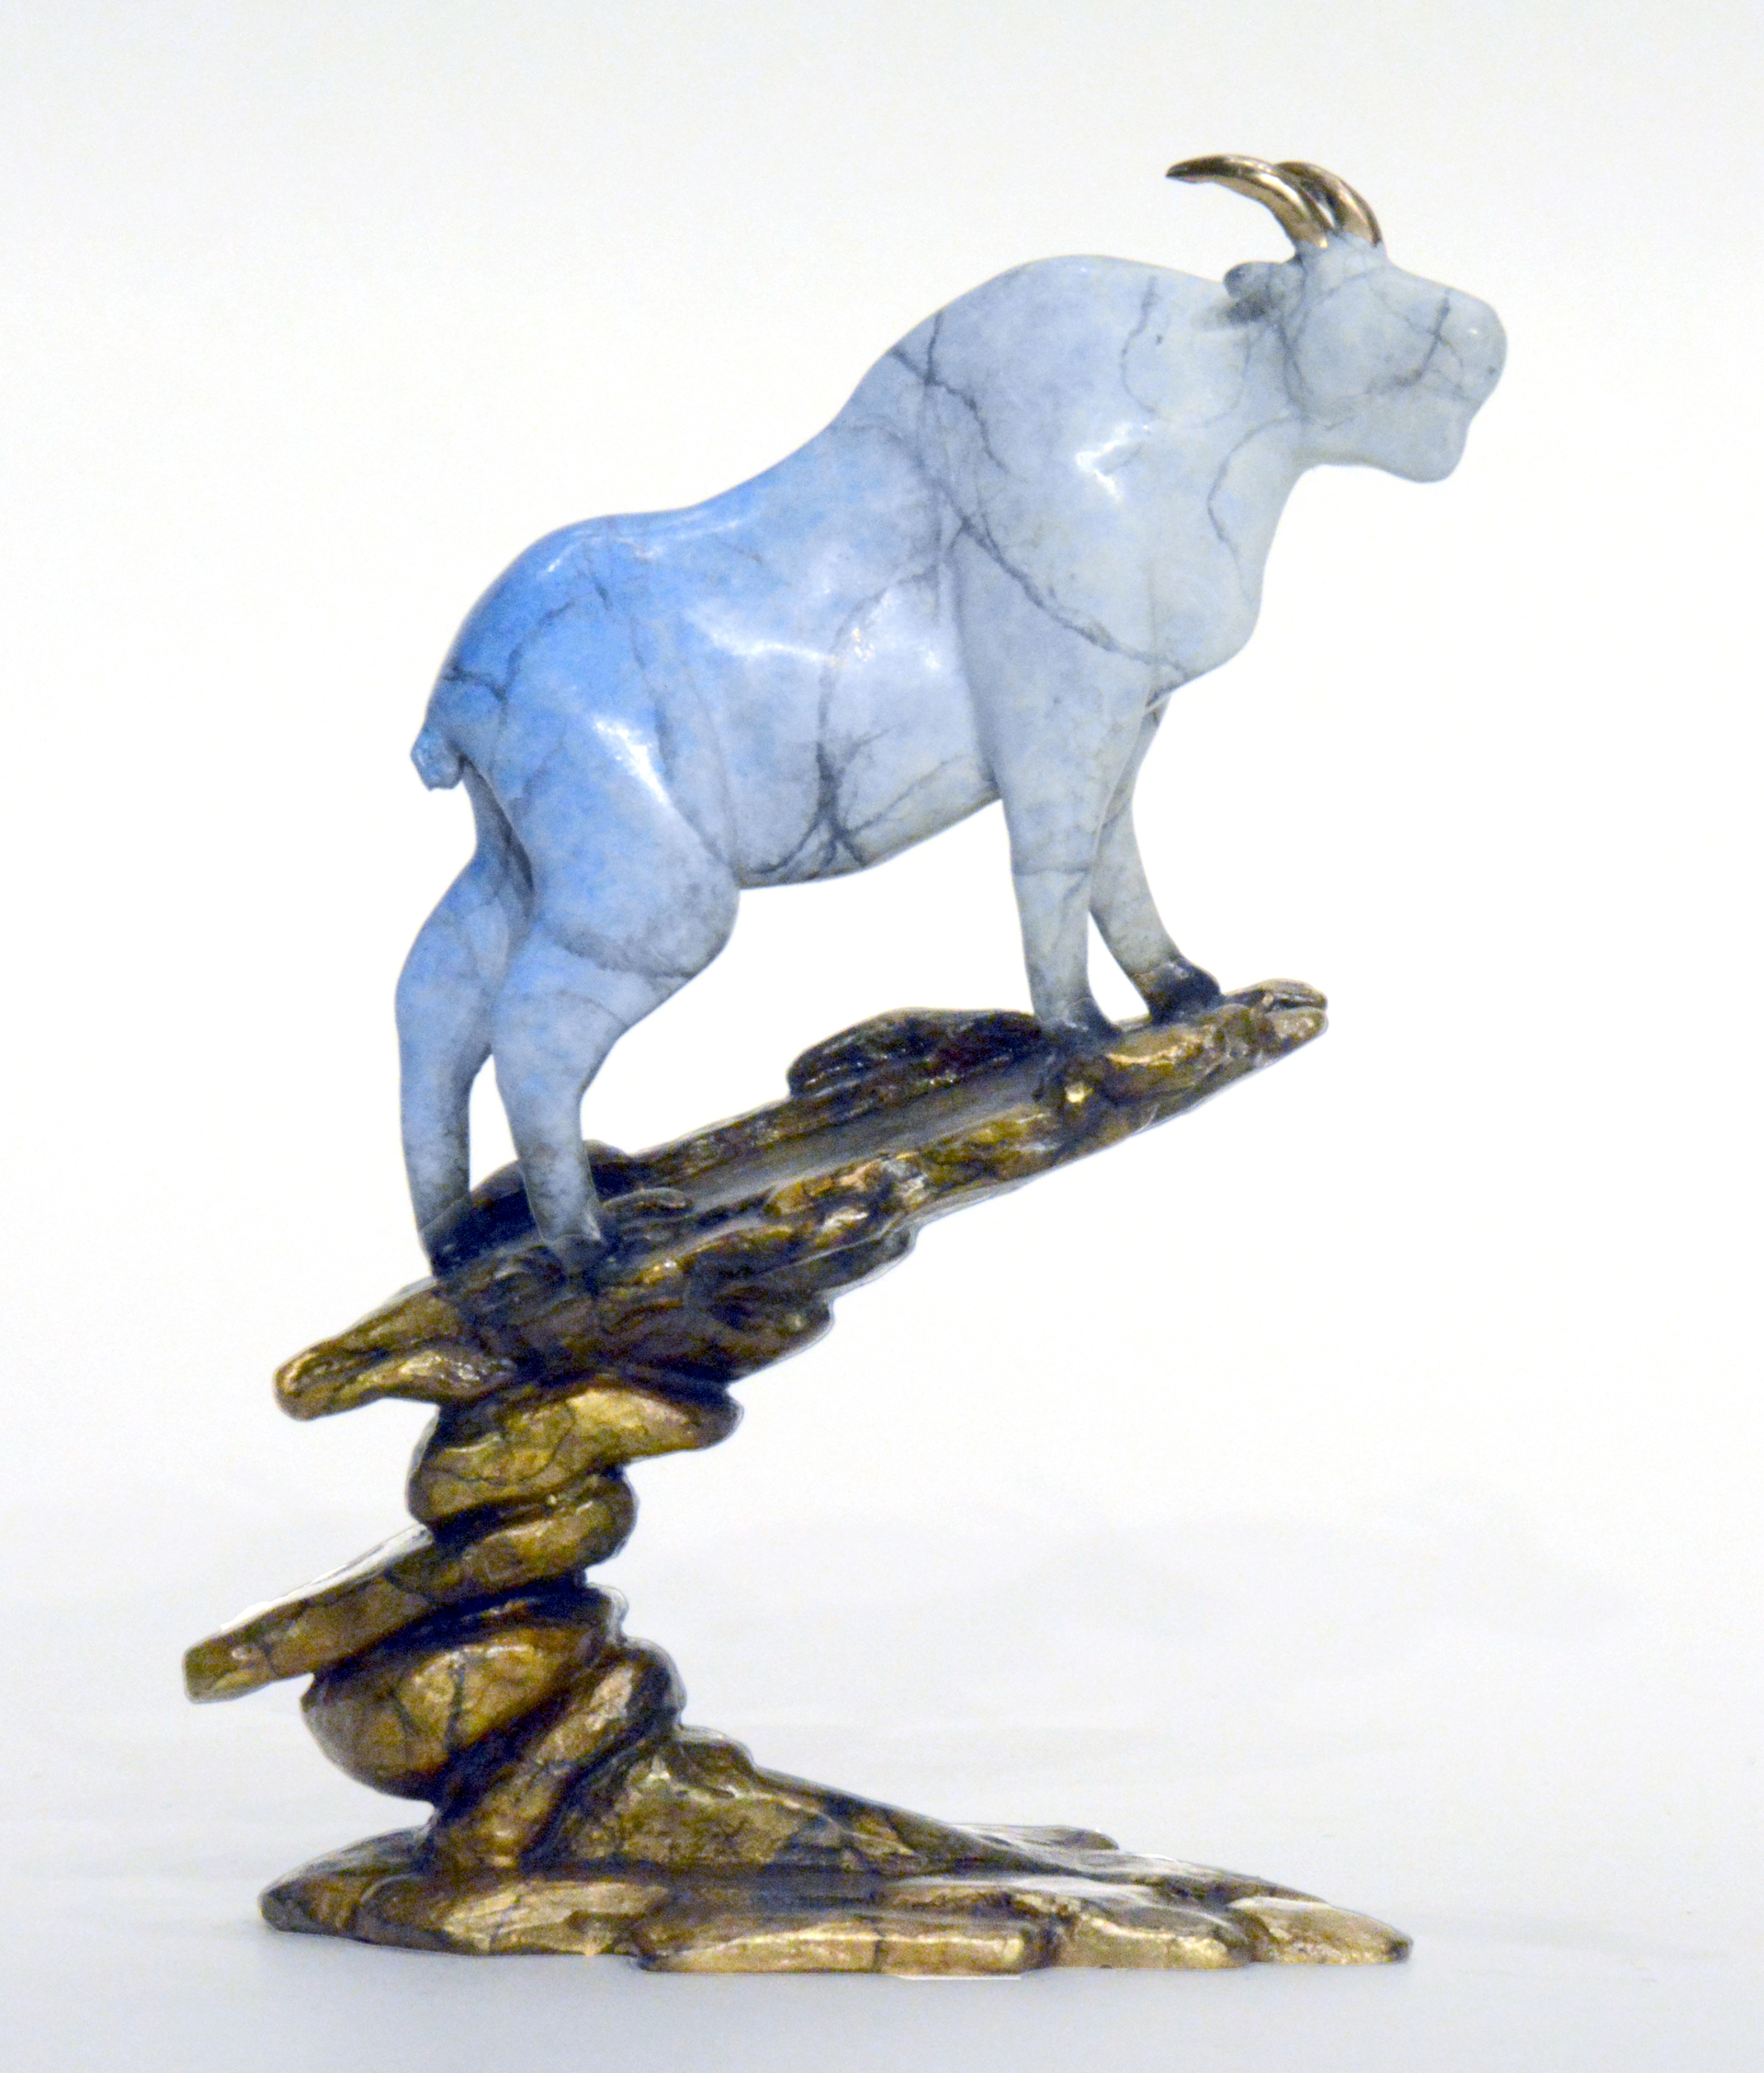 Confidence (Mountain Goat) by Eric Wilcox